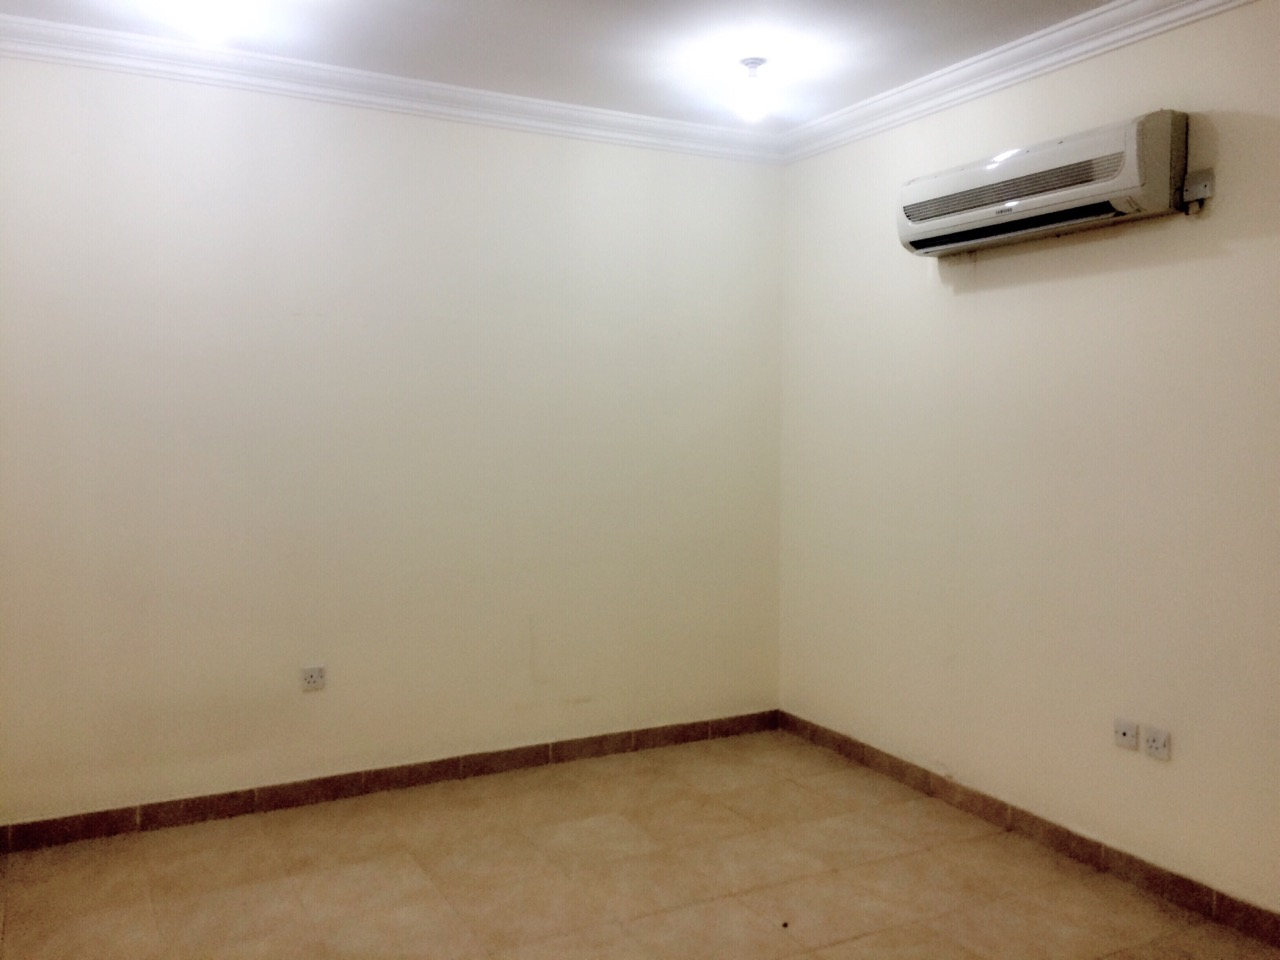 High Quality Information. 1 Room For Rent ...